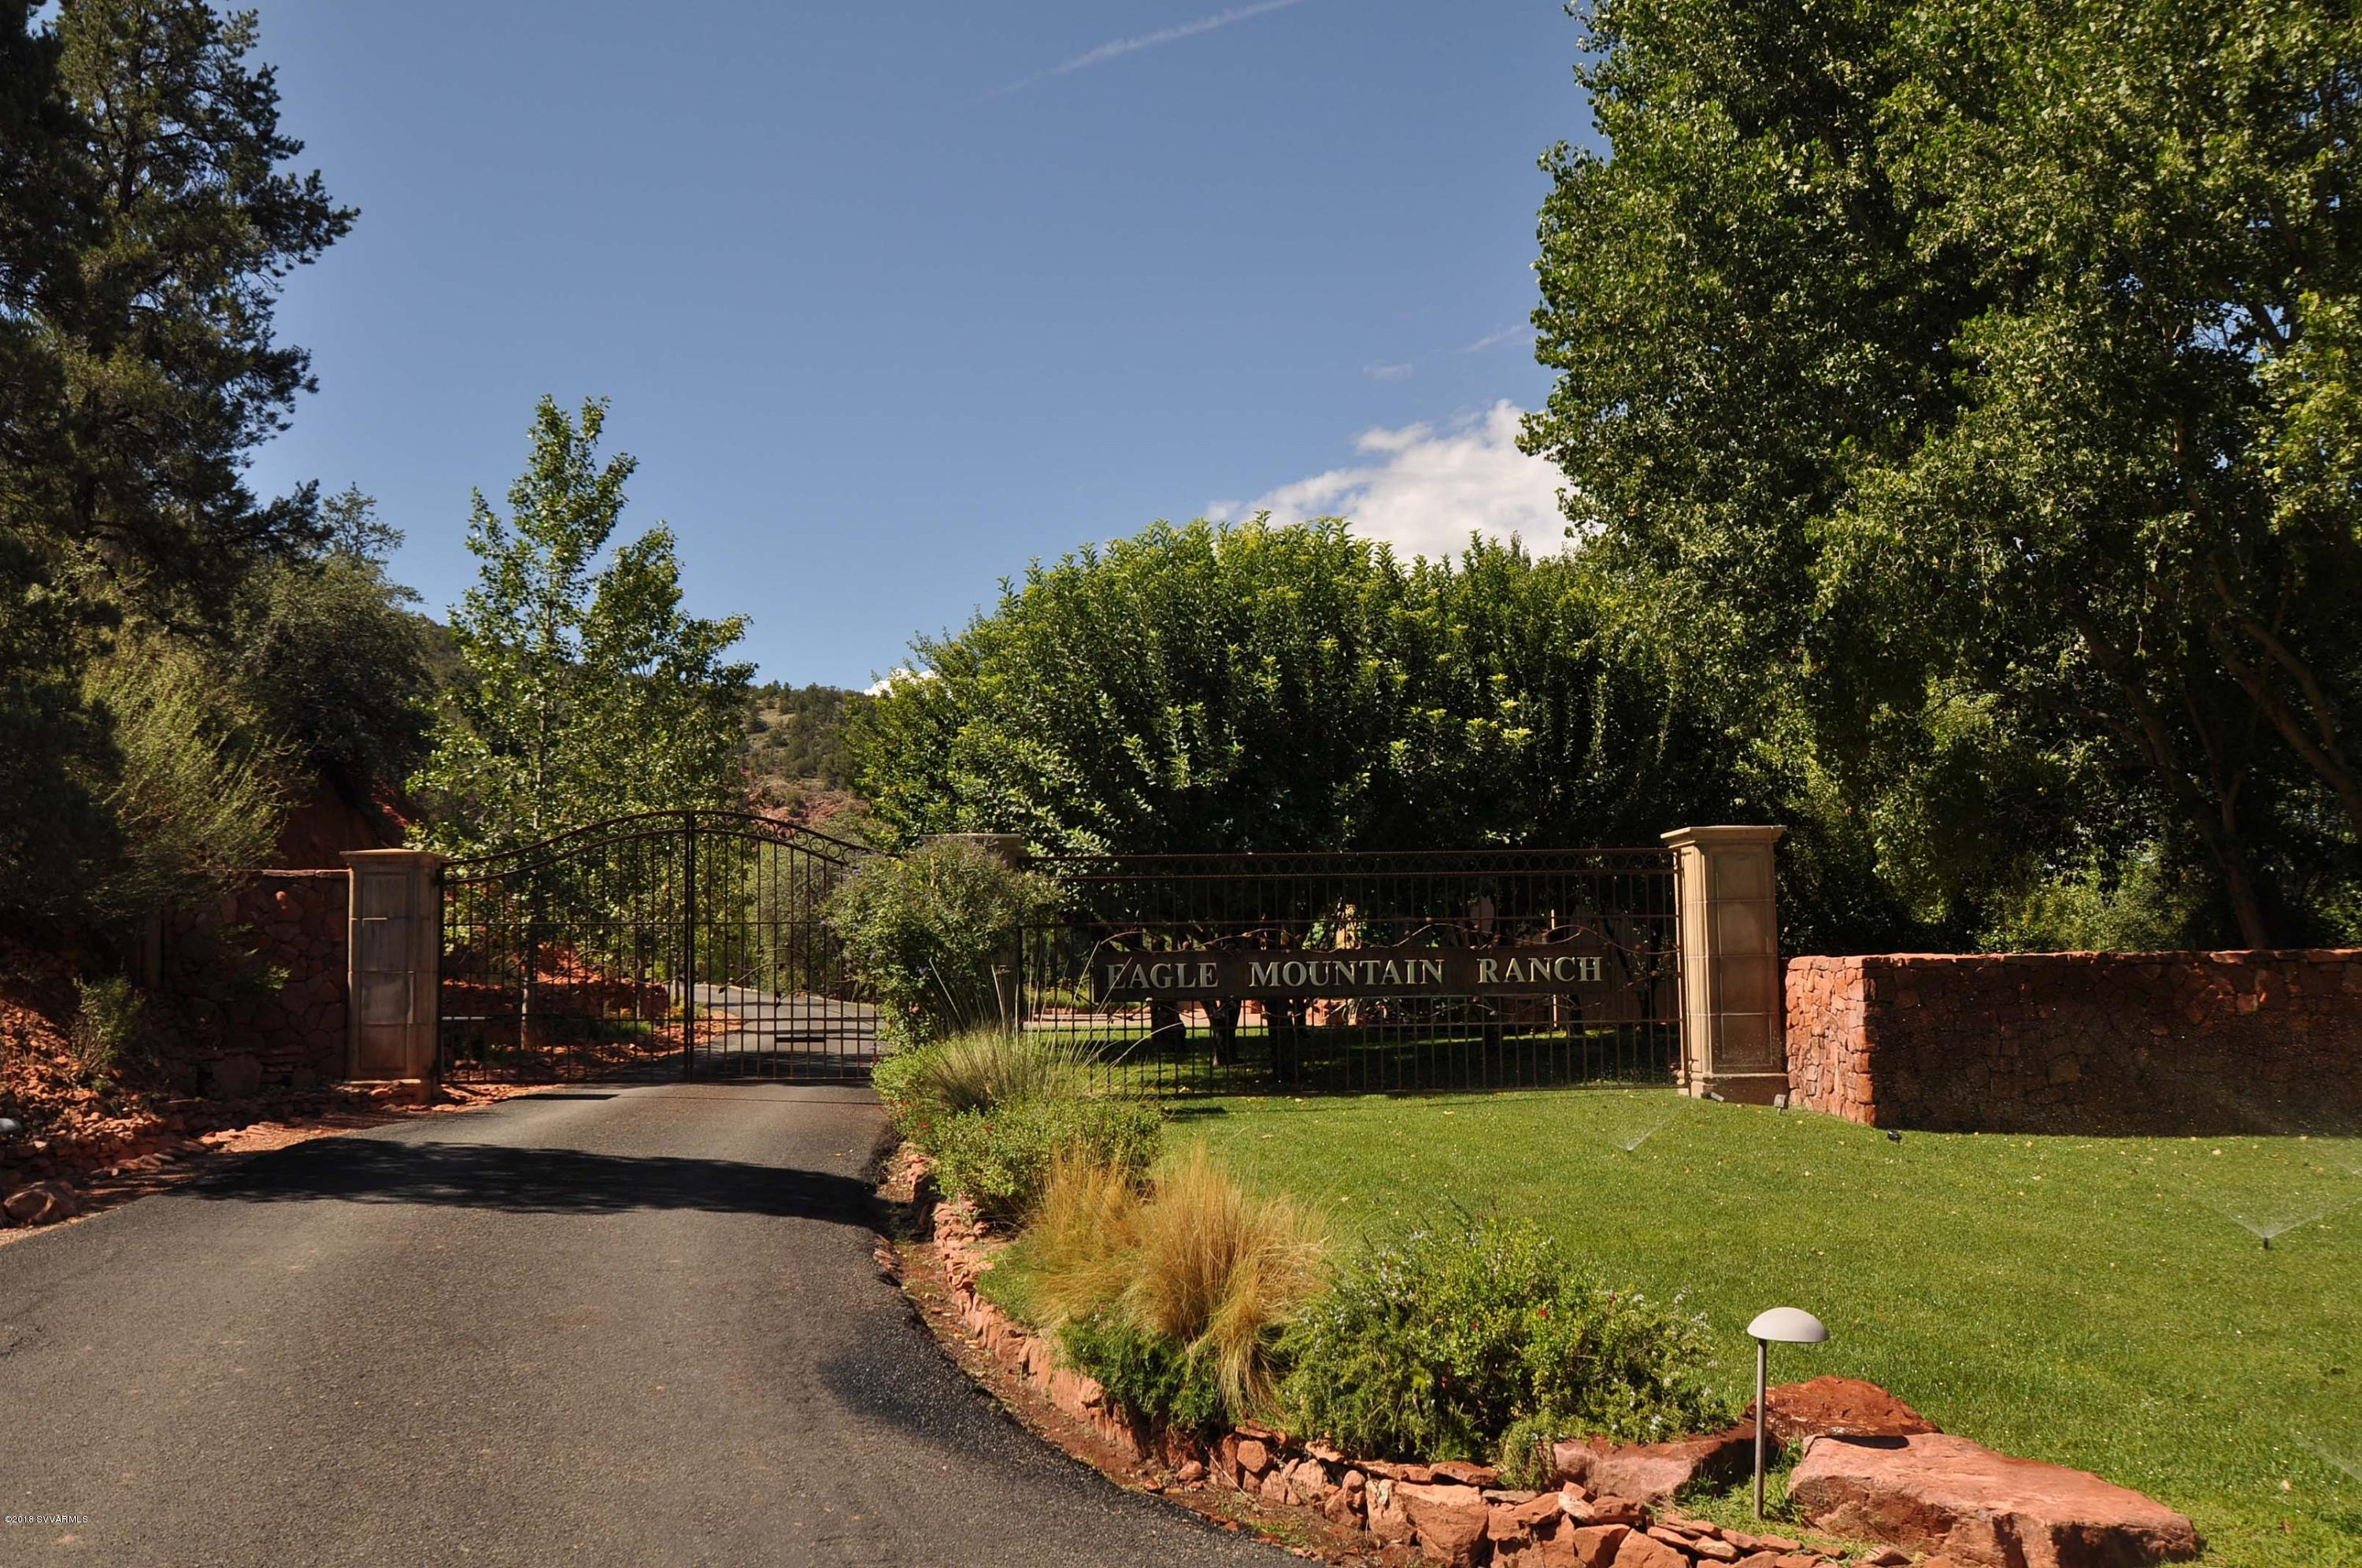 230 Eagle Mountain Ranch Sedona, AZ 86336